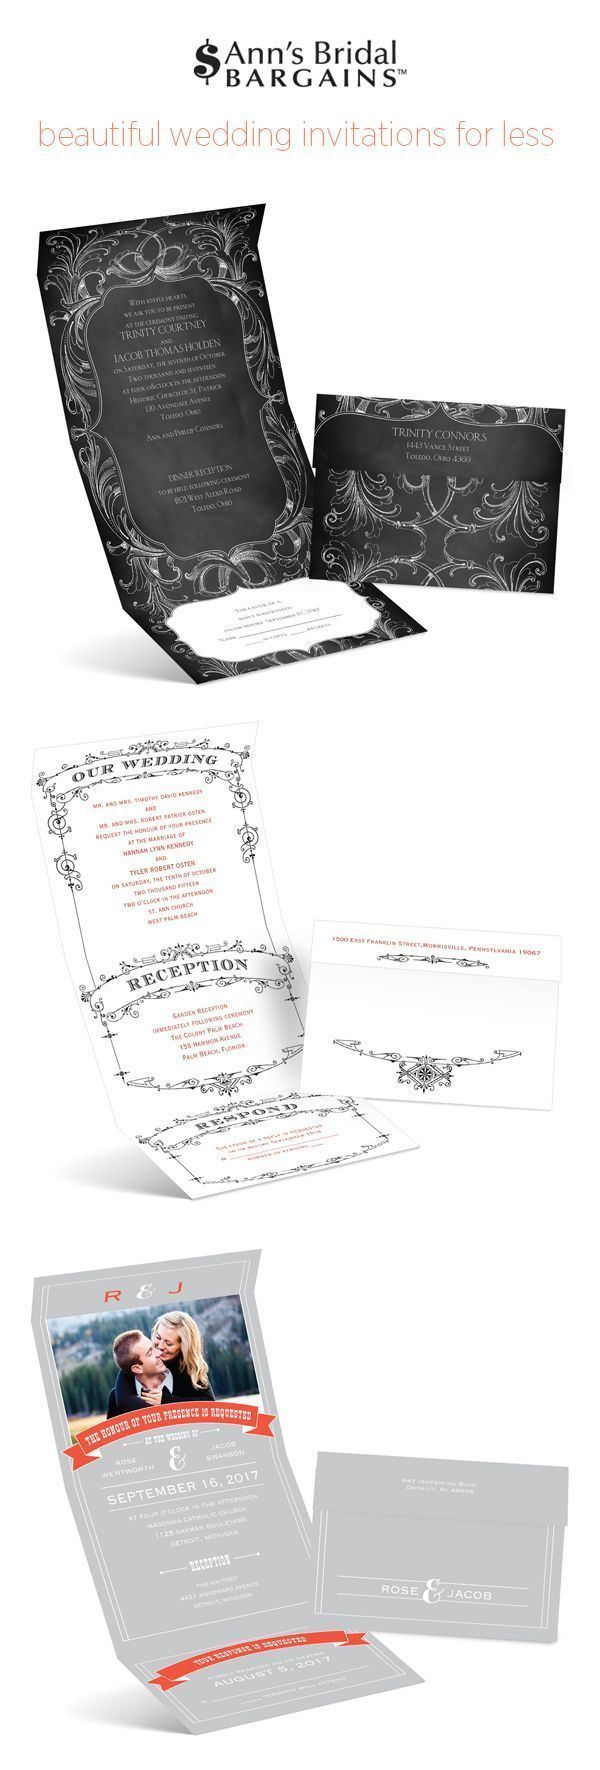 Invitations for less from Ann's Bridal Bargains